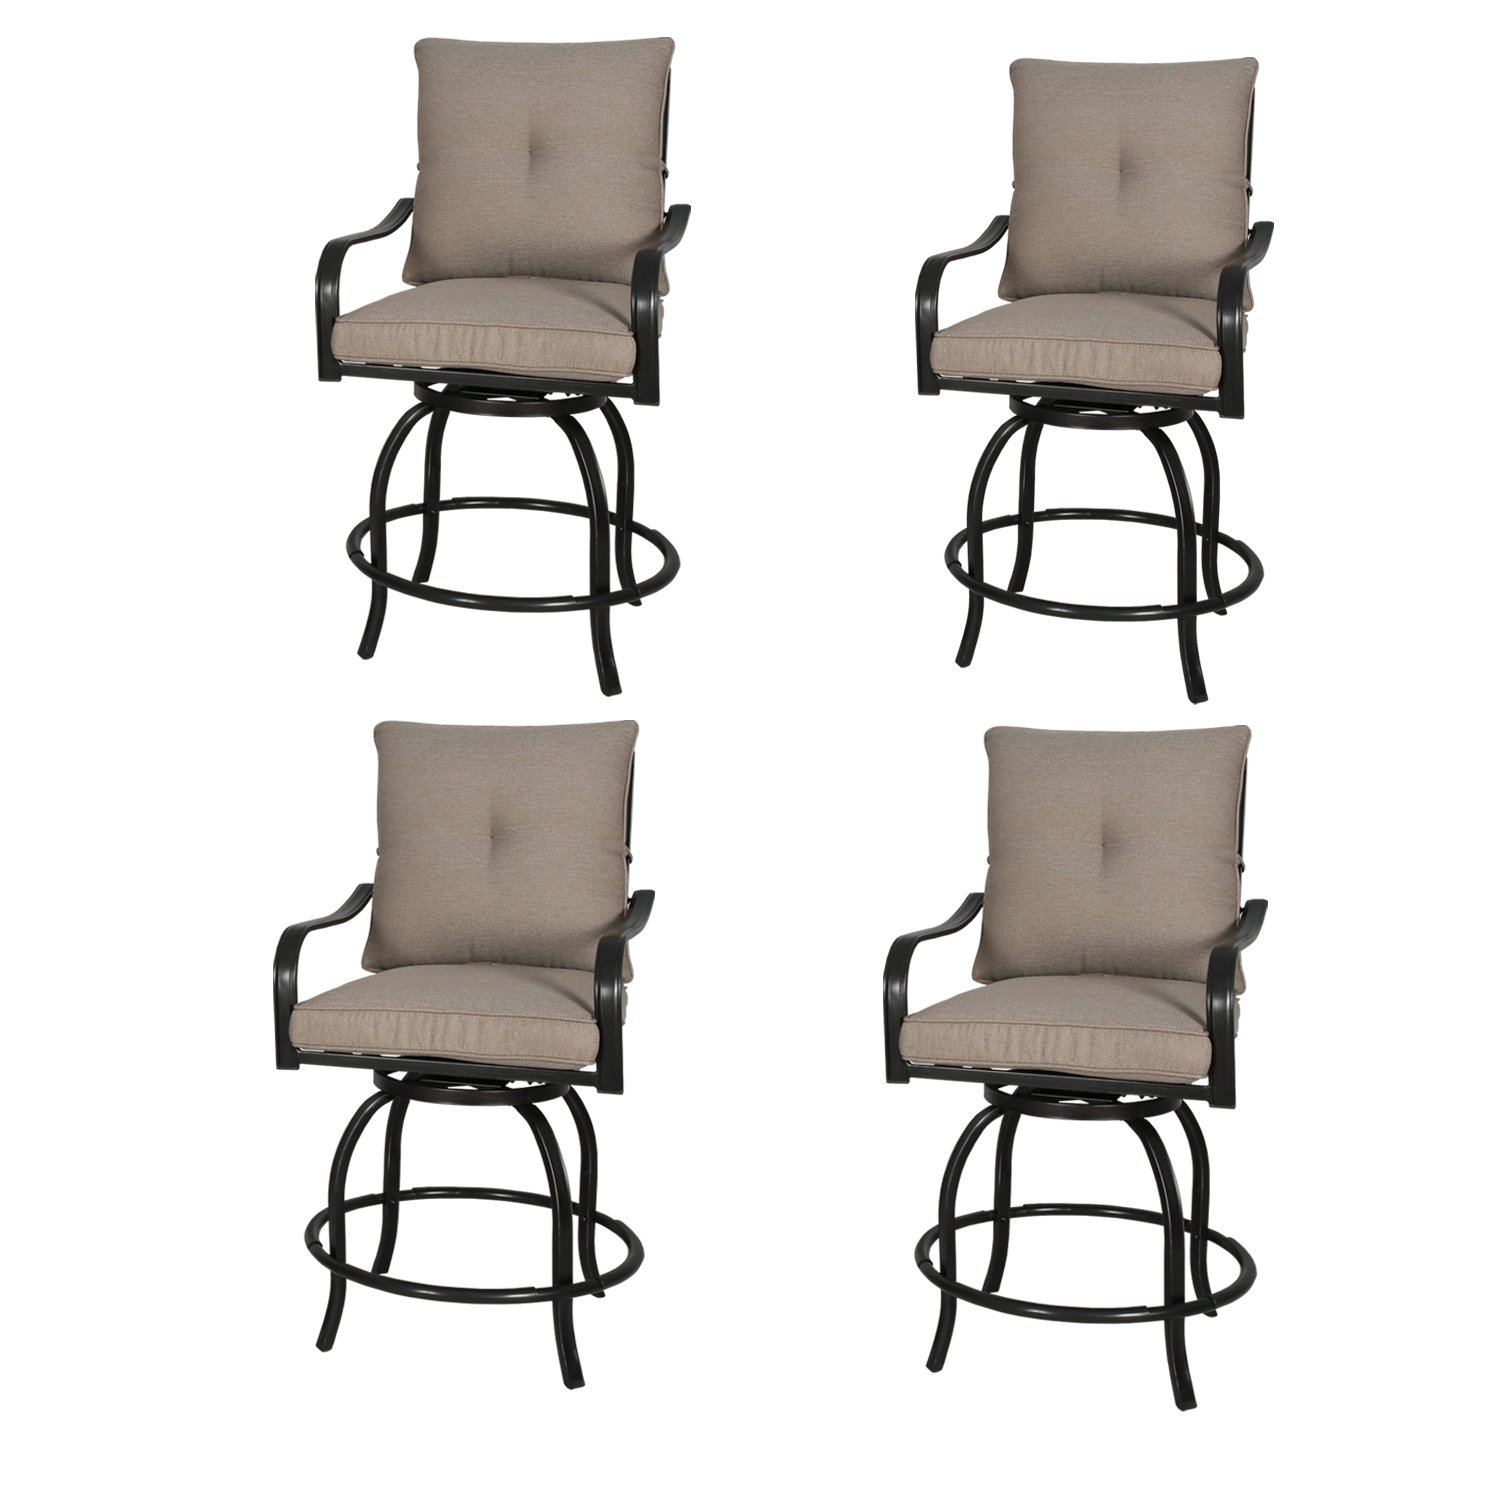 8615f1fee65 Amazon.com  Rimba Outdoor Swivel Chairs Height Patio Bar Stools with Beige  Cushions (Set of 4)  Garden   Outdoor